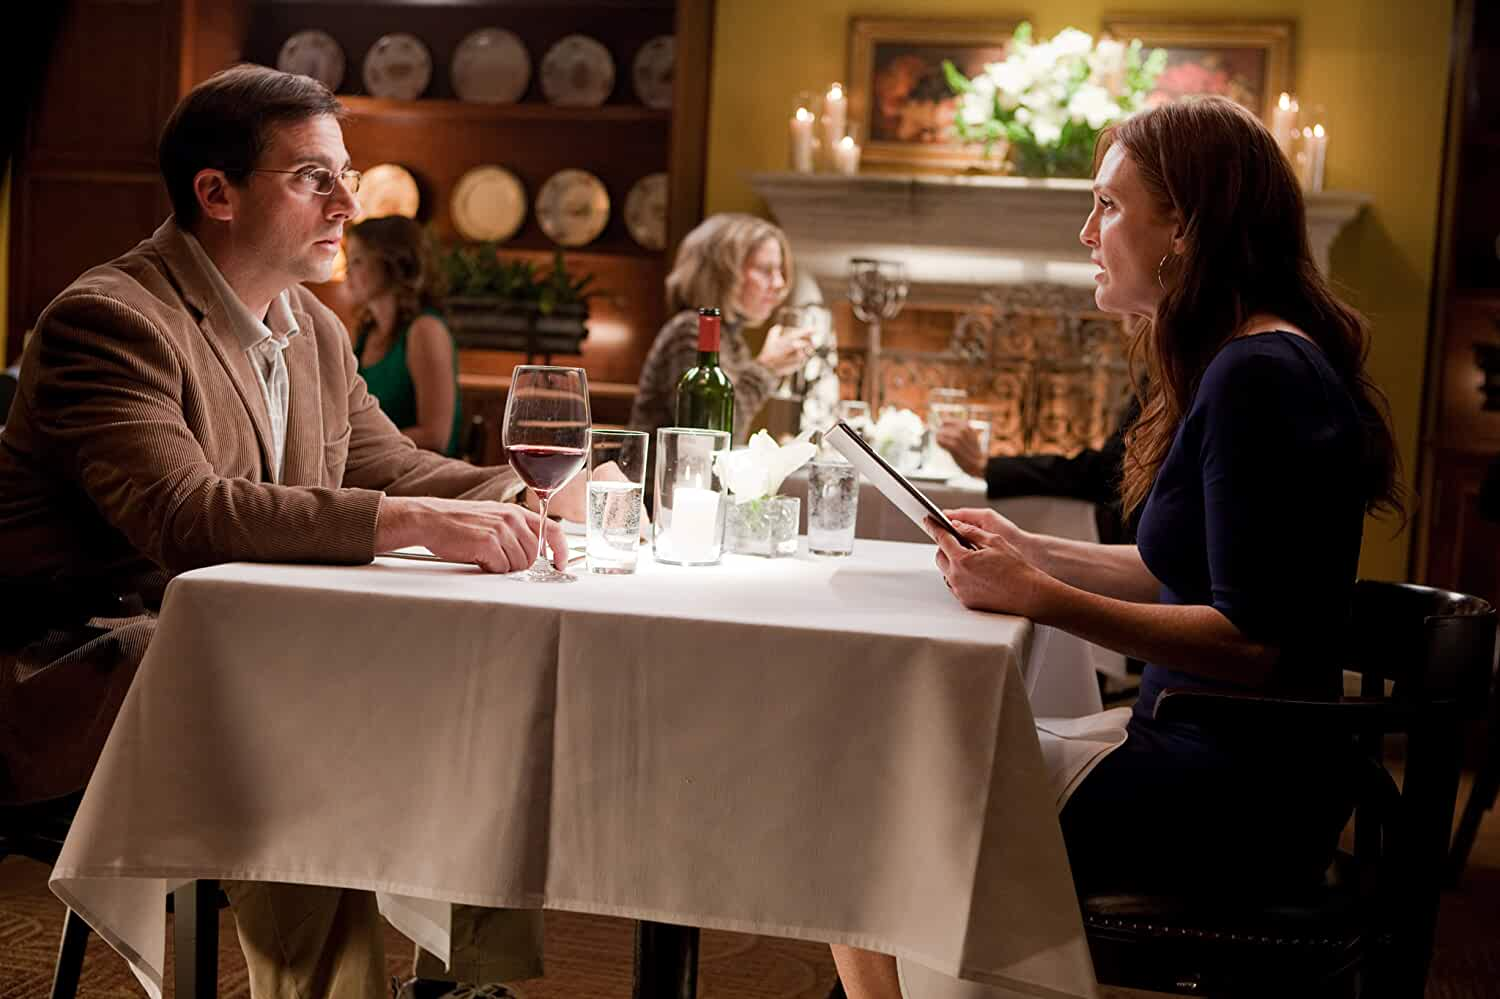 Julianne Moore and Steve Carell in Crazy, Stupid, Love. (2011)